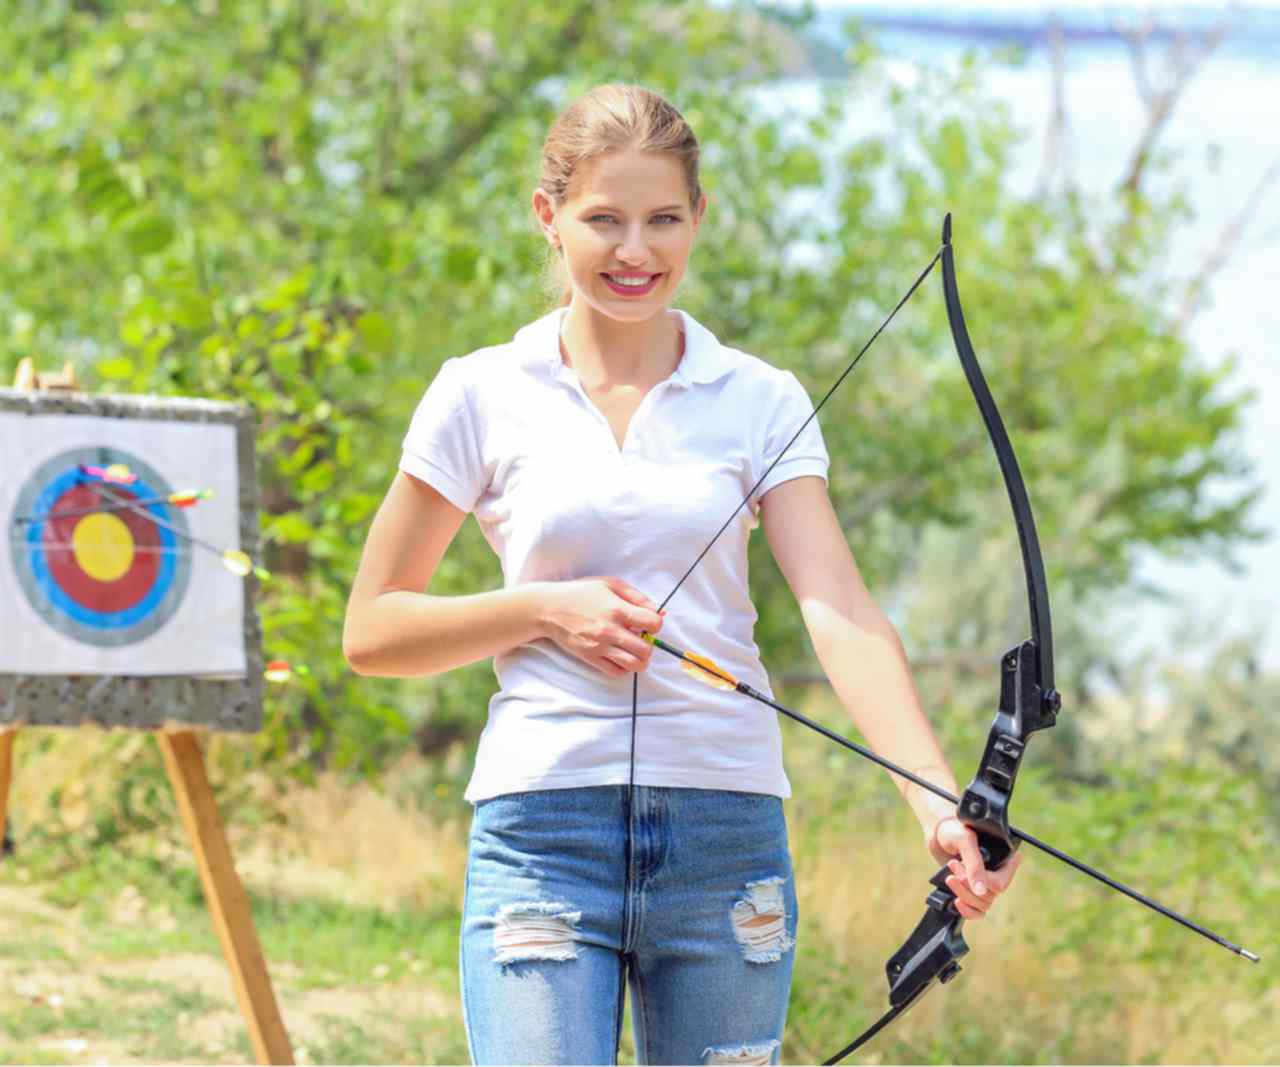 Teenaged girl practices archery